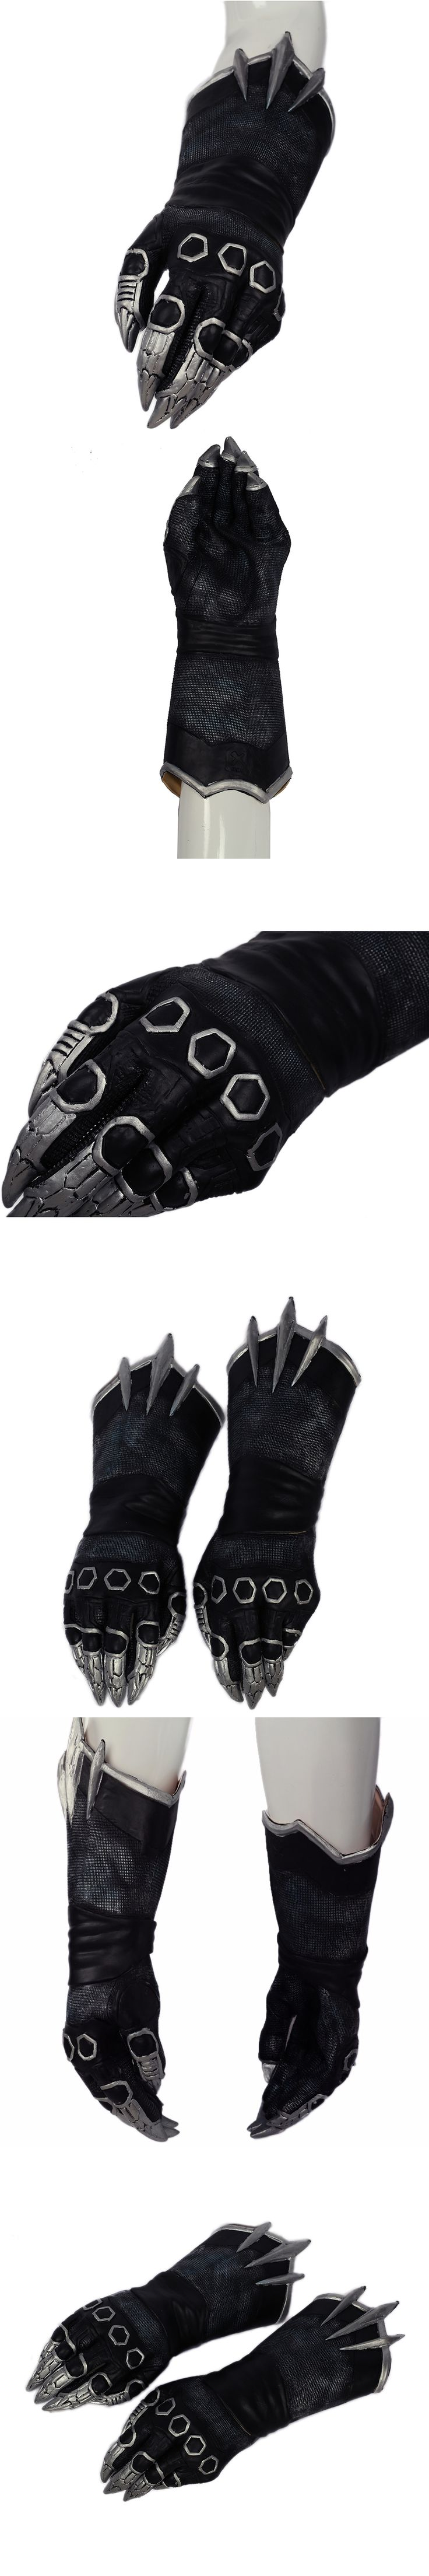 Black Panther Claw Gloves New Movie Captain America 3: Civil War Cosplay Props XCOSER Latex Gloves Halloween Costume Accessory